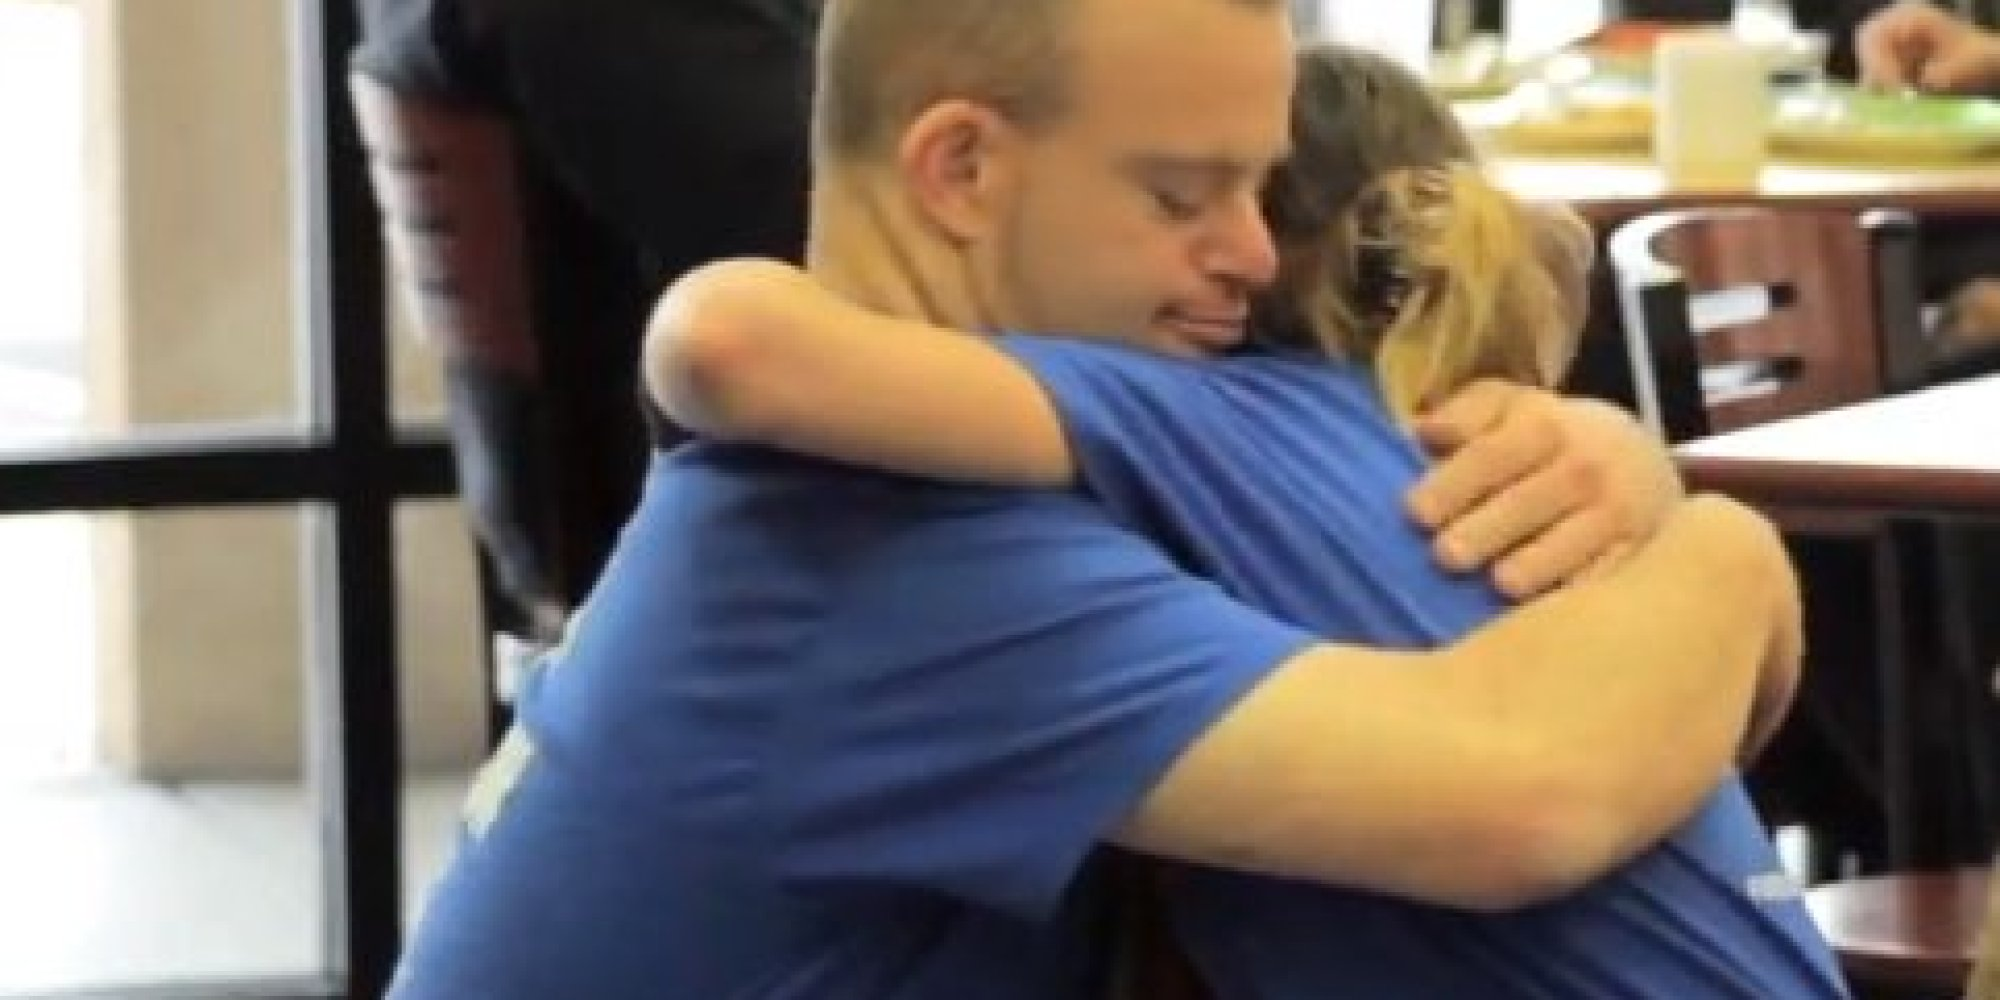 Restaurant Founder With Down Syndrome Hugs More Than 2,000 People In 4 Days